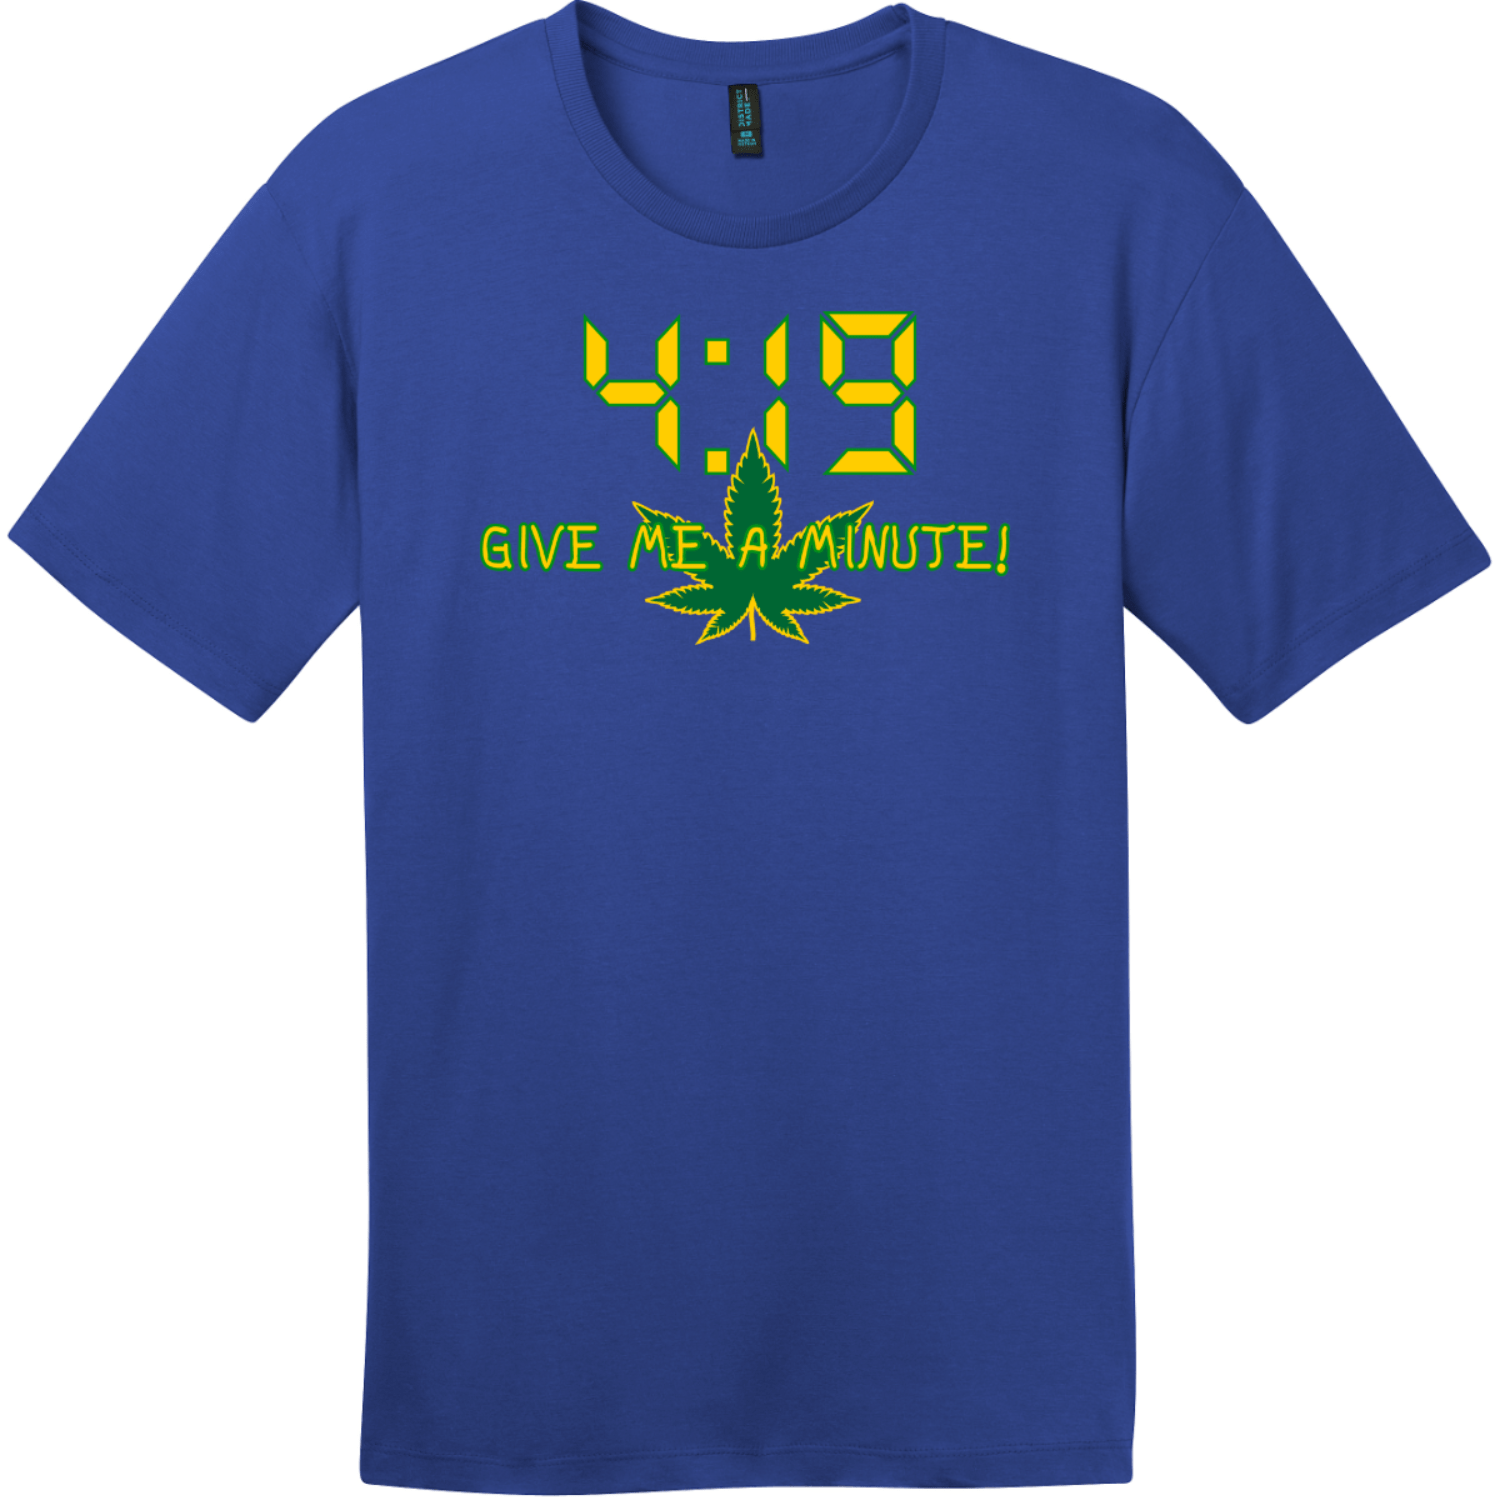 4:19 Give Me A Minute T-Shirt Deep Royal District Perfect Weight Tee DT104